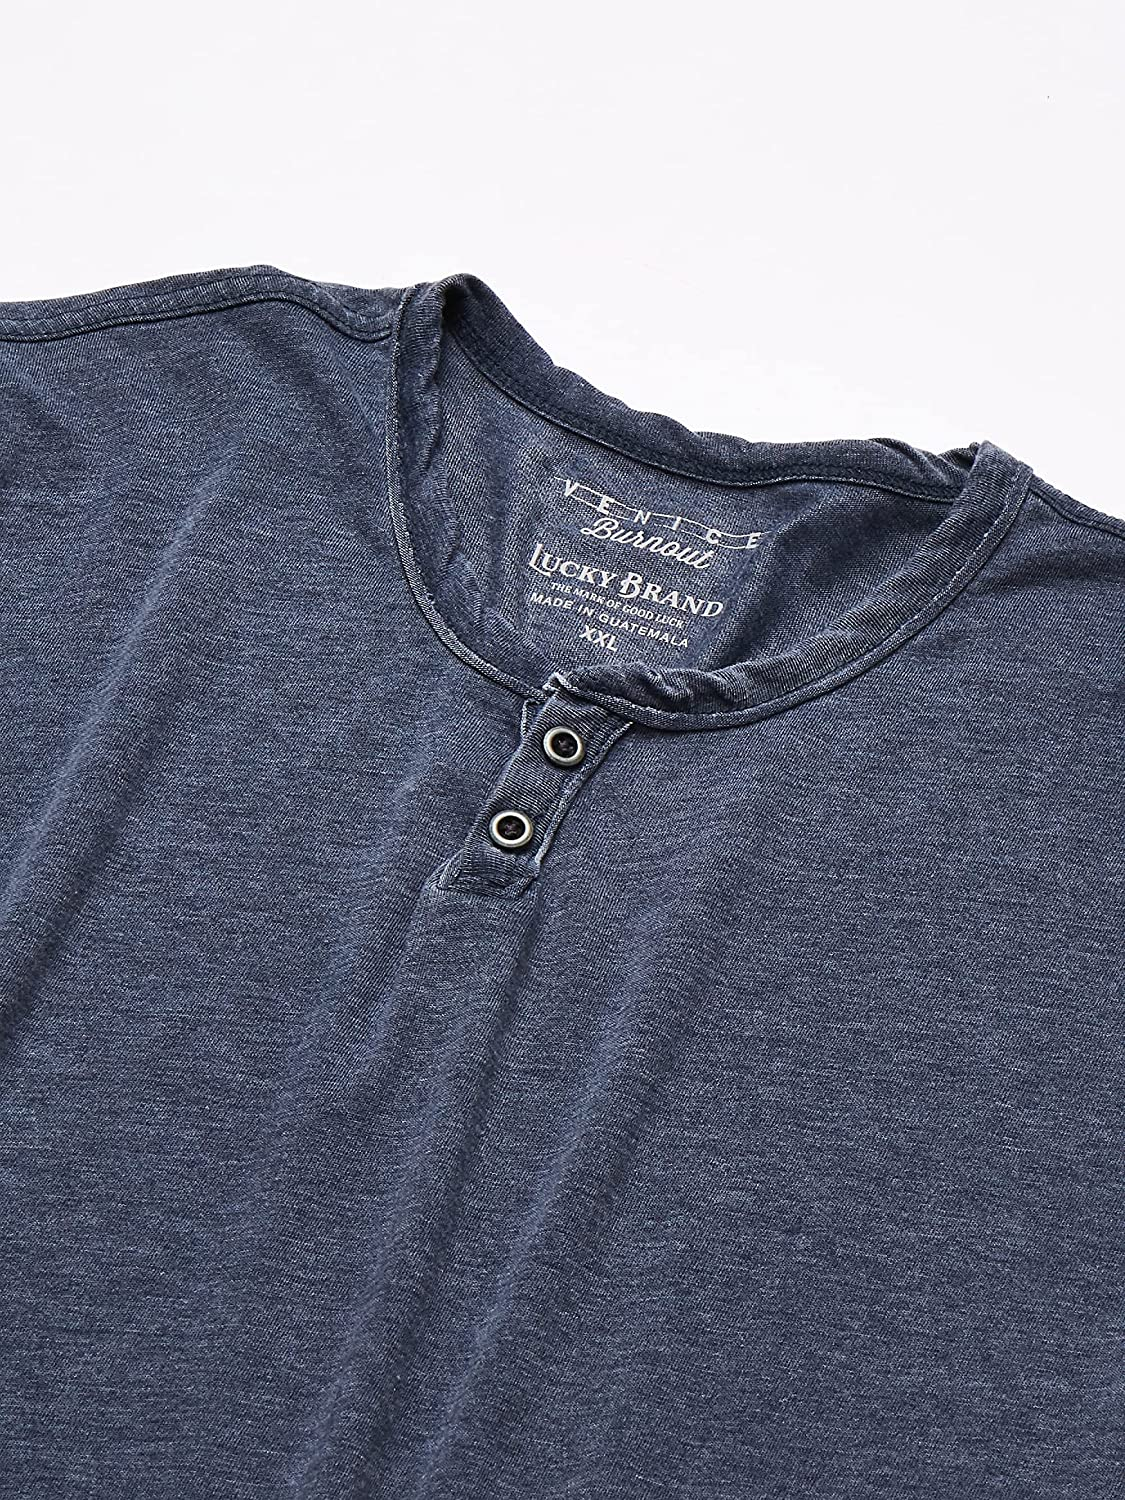 Lucky Brand Venice Burnout Thermal Henley NEW Men/'s Shirt Charcoal Grey M $49.50